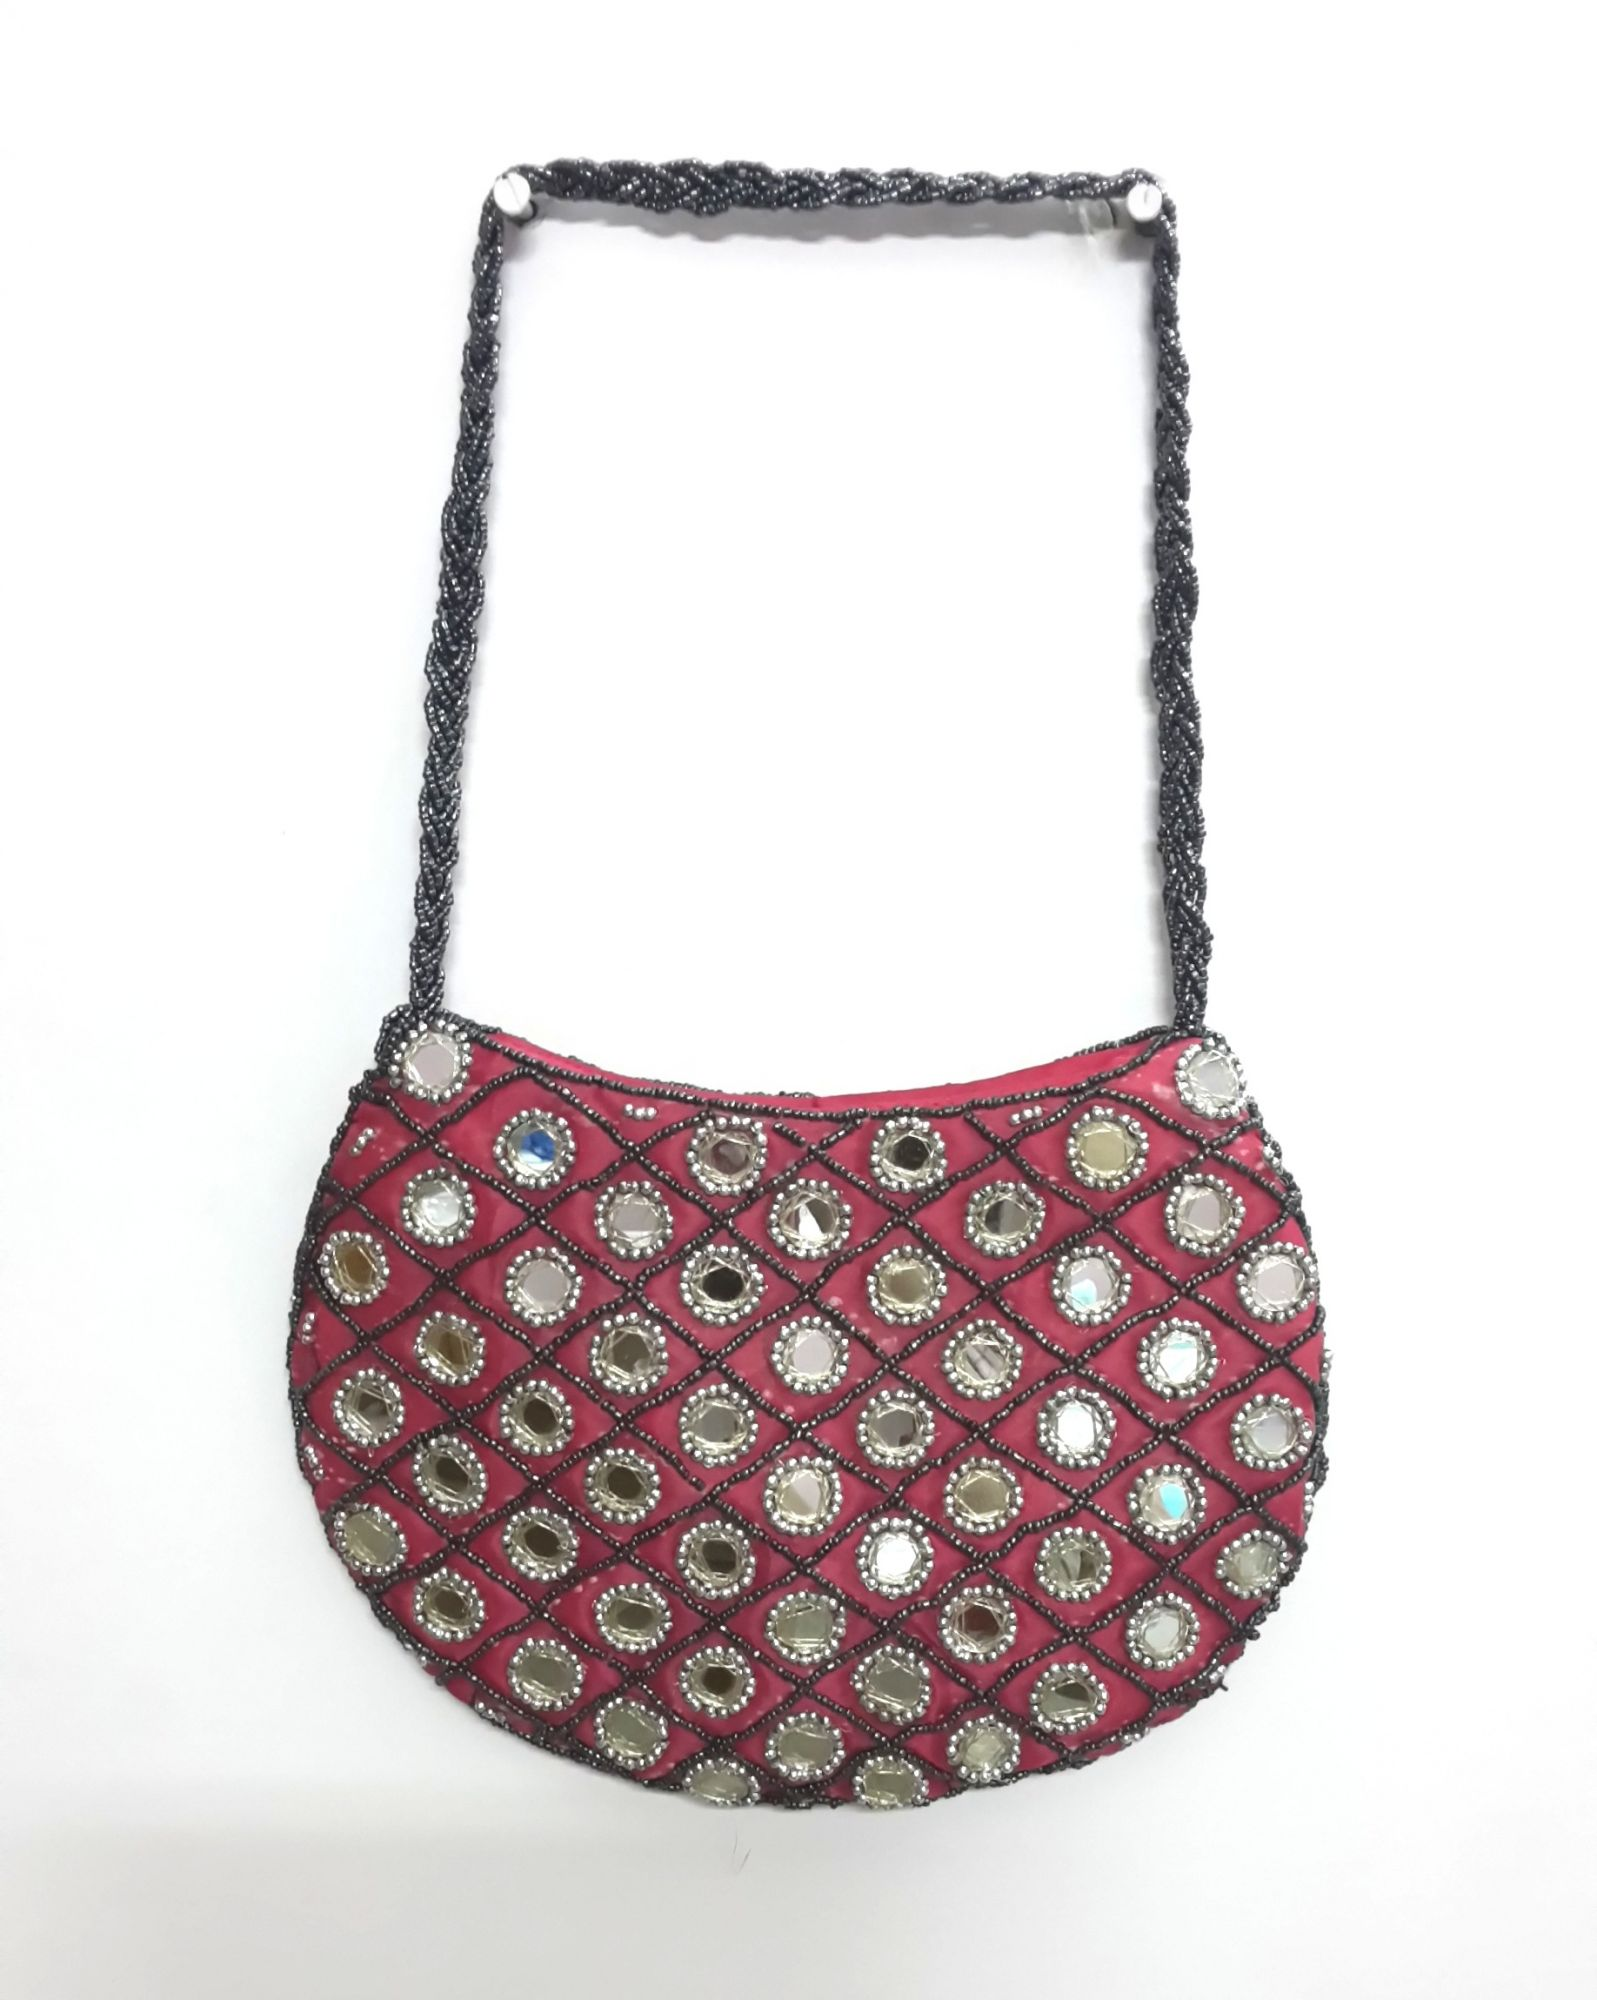 Moon shaped mirror bags with bead slings - Pink